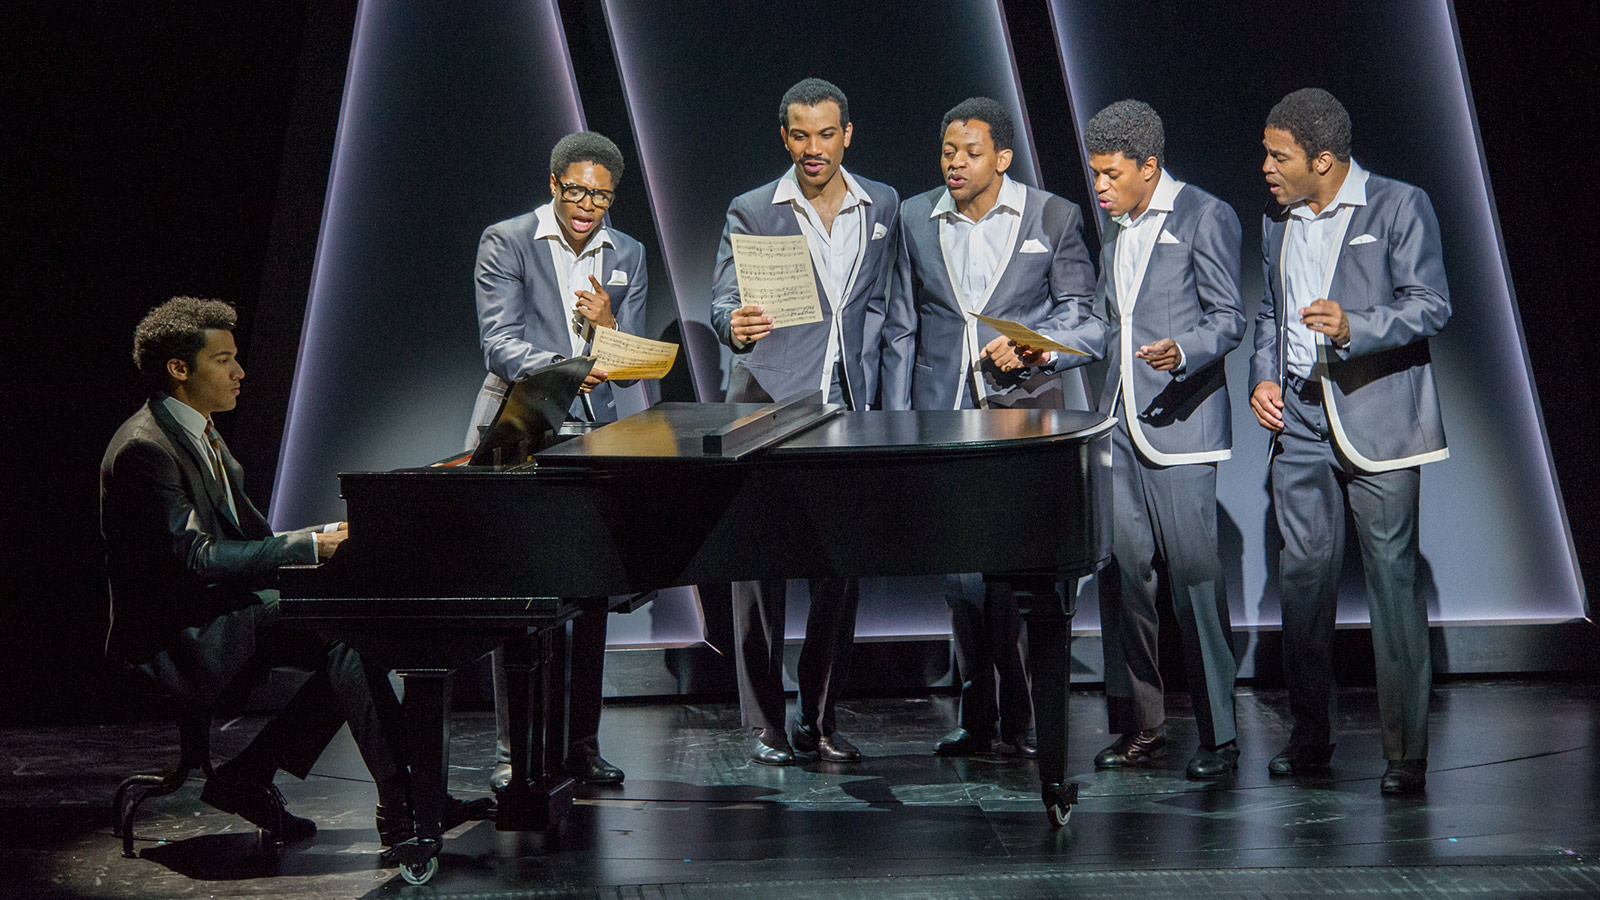 (l to r) Christian Thompson (Smokey Robinson), Ephraim Sykes (David Ruffin), Jared Joseph (Melvin Franklin), Derrick Baskin (Otis Williams), Jeremy Pope (Eddie Kendricks), and James Harkness (Paul Williams) in the world premiere of Ain't Too Proud—The Life and Times of The Temptations at Berkeley Repertory Theatre.